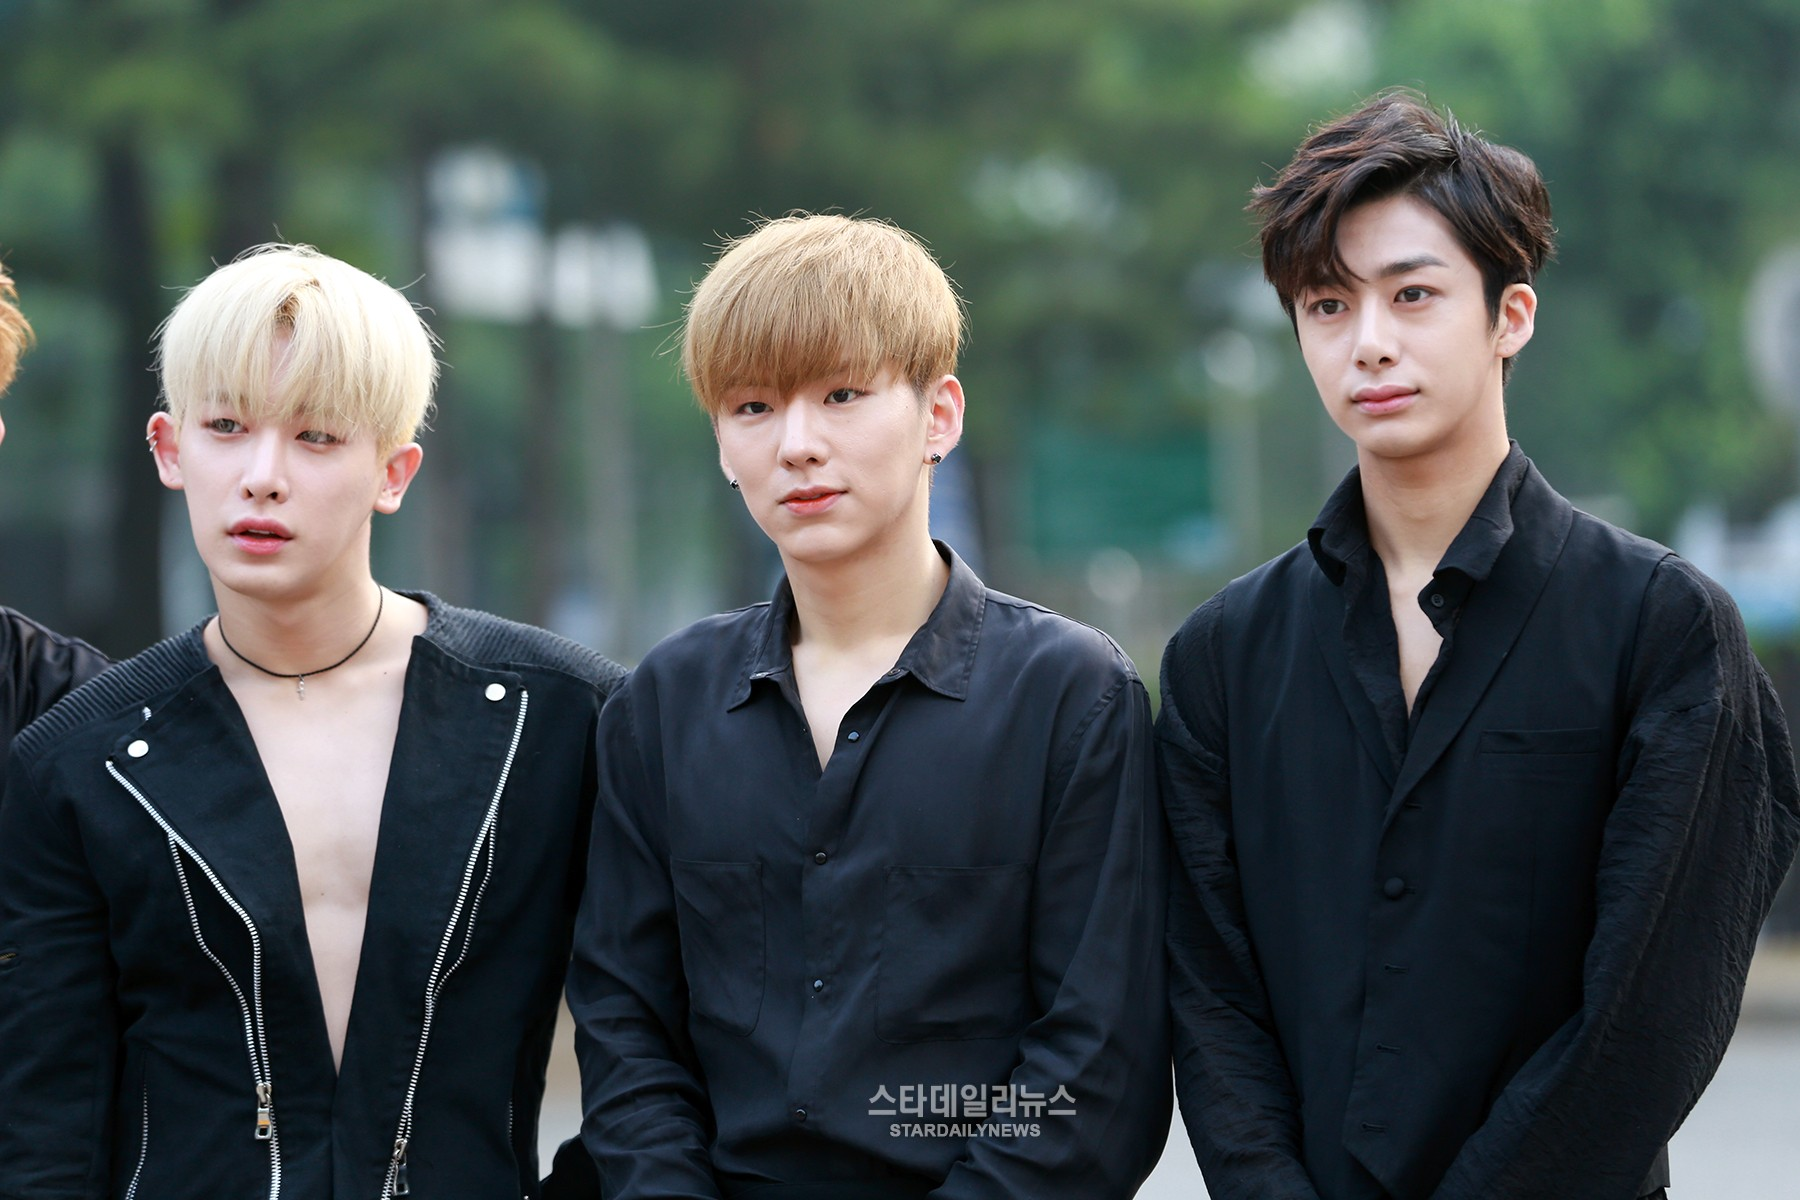 Monsta X S Wonho Kihyun And Hyungwon Revealed To Have